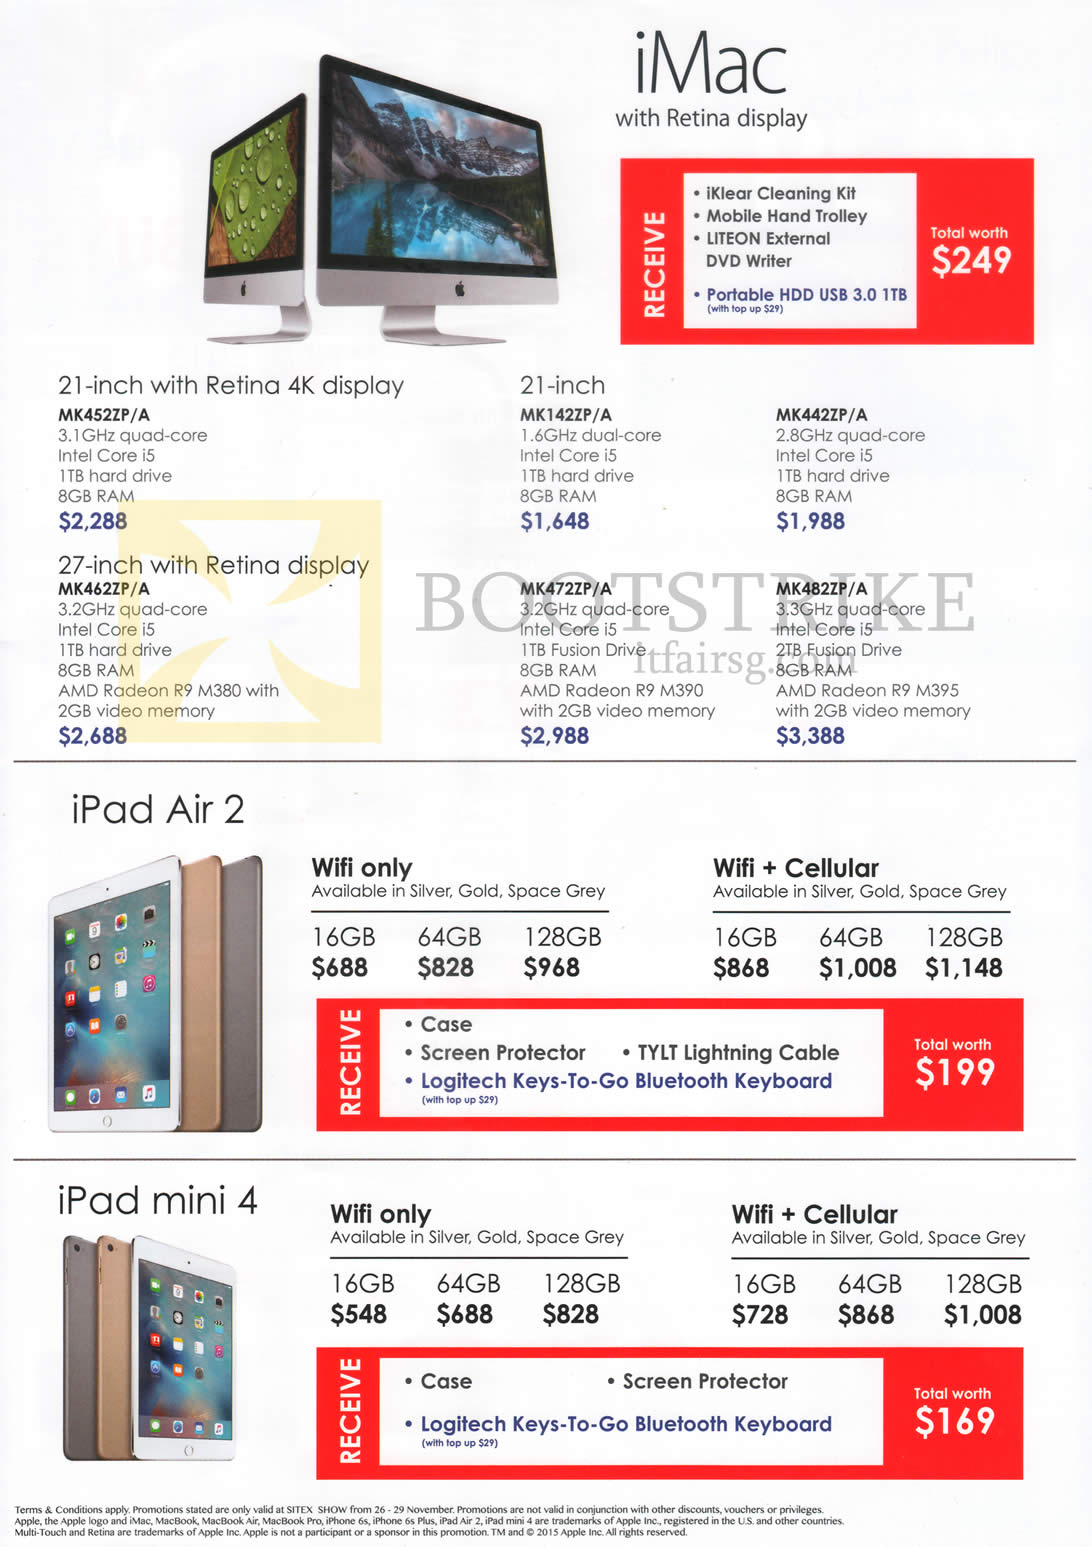 SITEX 2015 price list image brochure of Best Denki Apple IMac With Retina Display, 21 Inch, 27-inch Retina Display, IPad Air 2, IPad Mini 4, 16GB, 64GB, 128GB